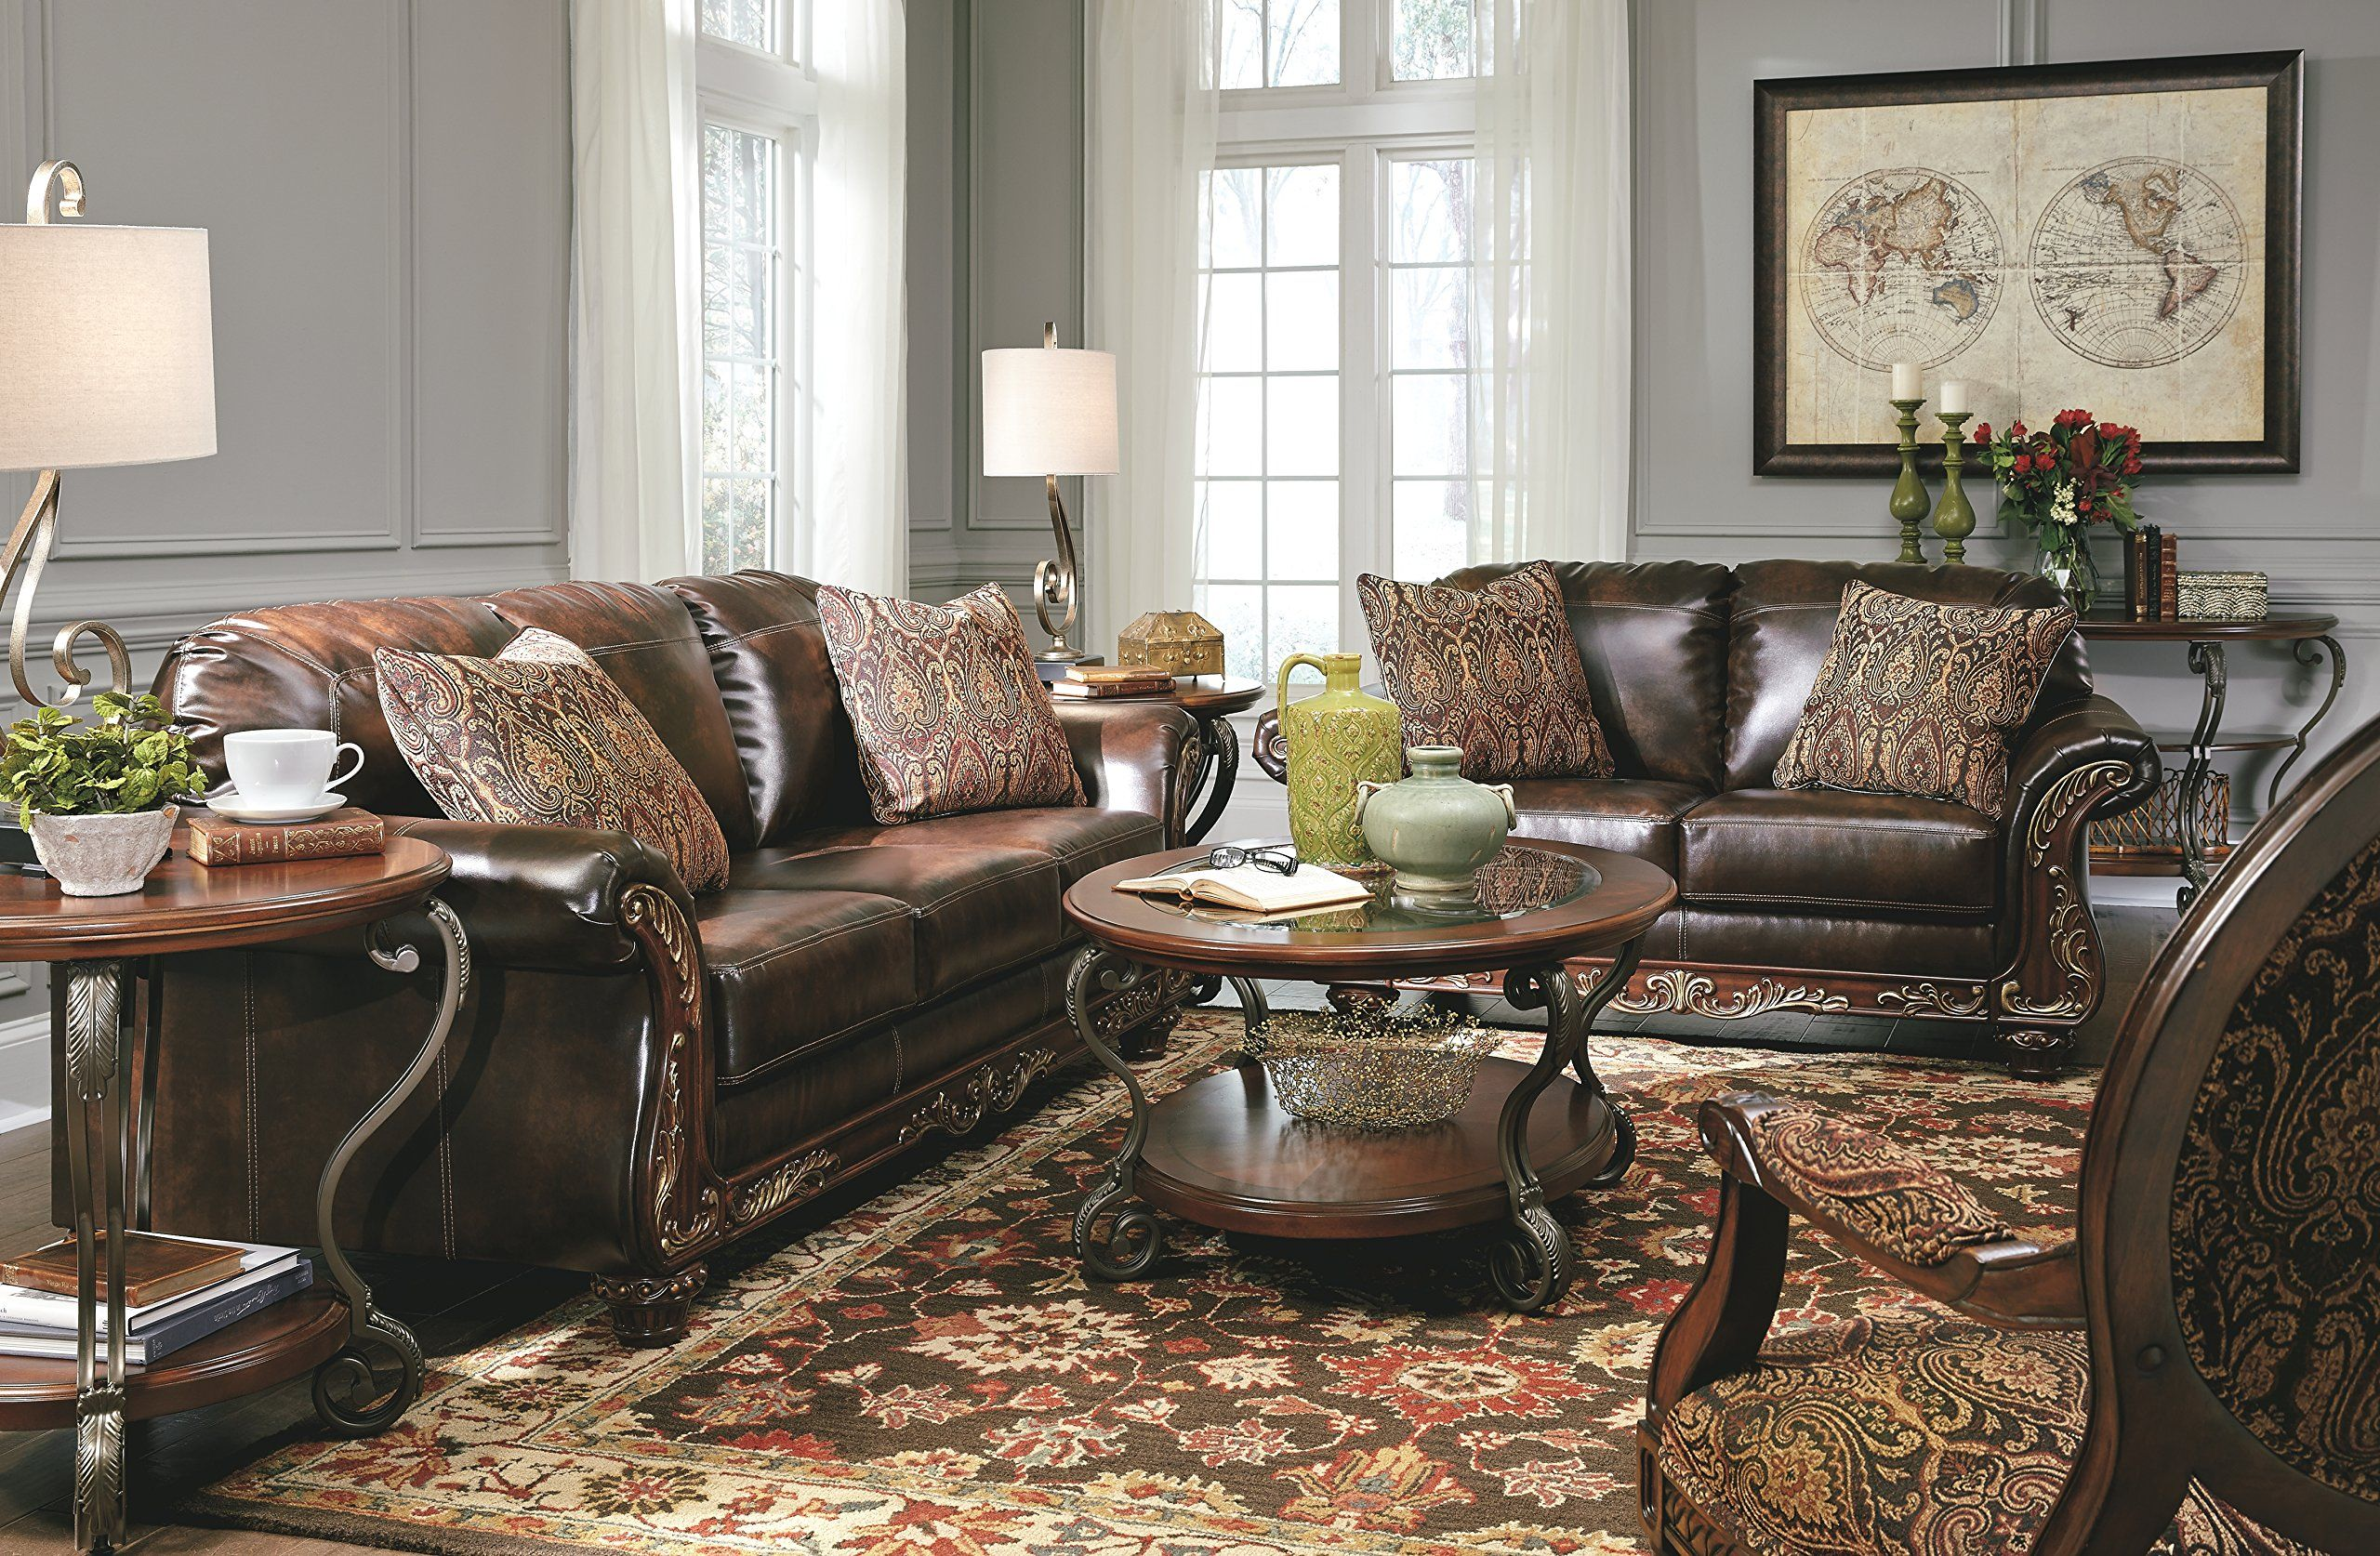 Ashley Furniture Signature Design Vanceton Loveseat Ornate Traditional Sofa Antique Brown Read More Reviews Of The Product By Visiting Link On